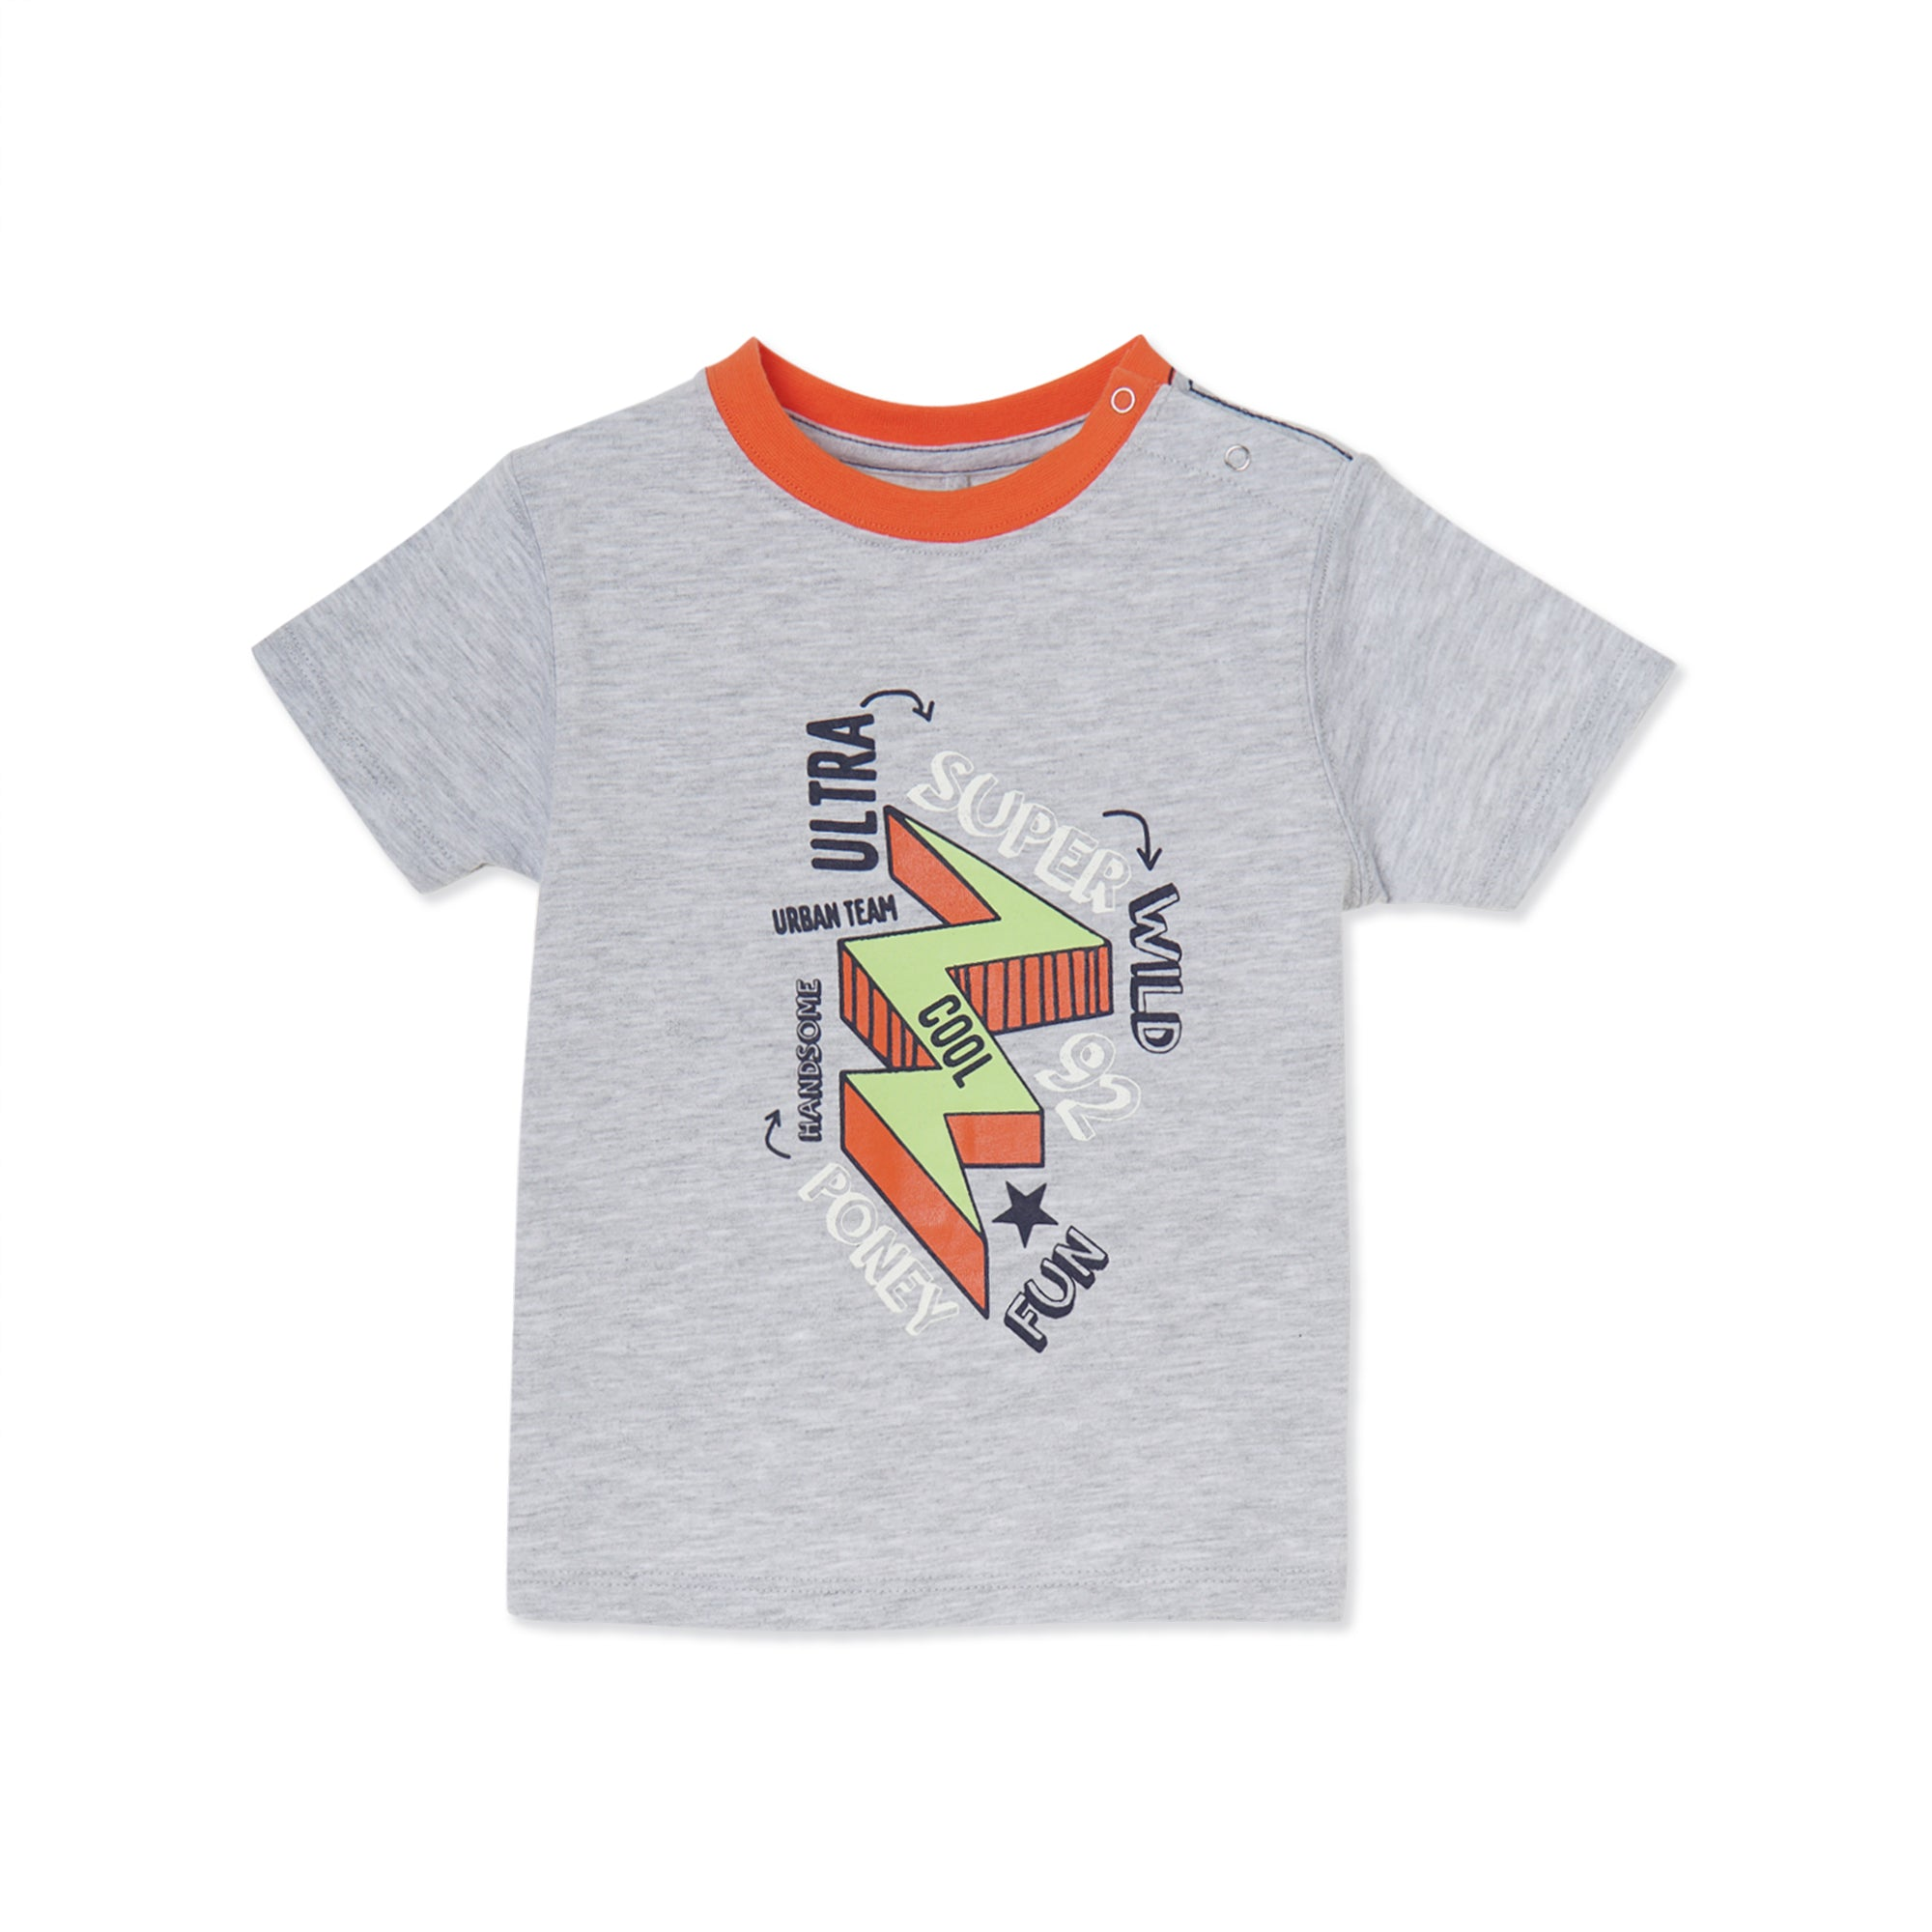 Poney Boys S/Sleeve Tee 8570 (6mths-12yrs)